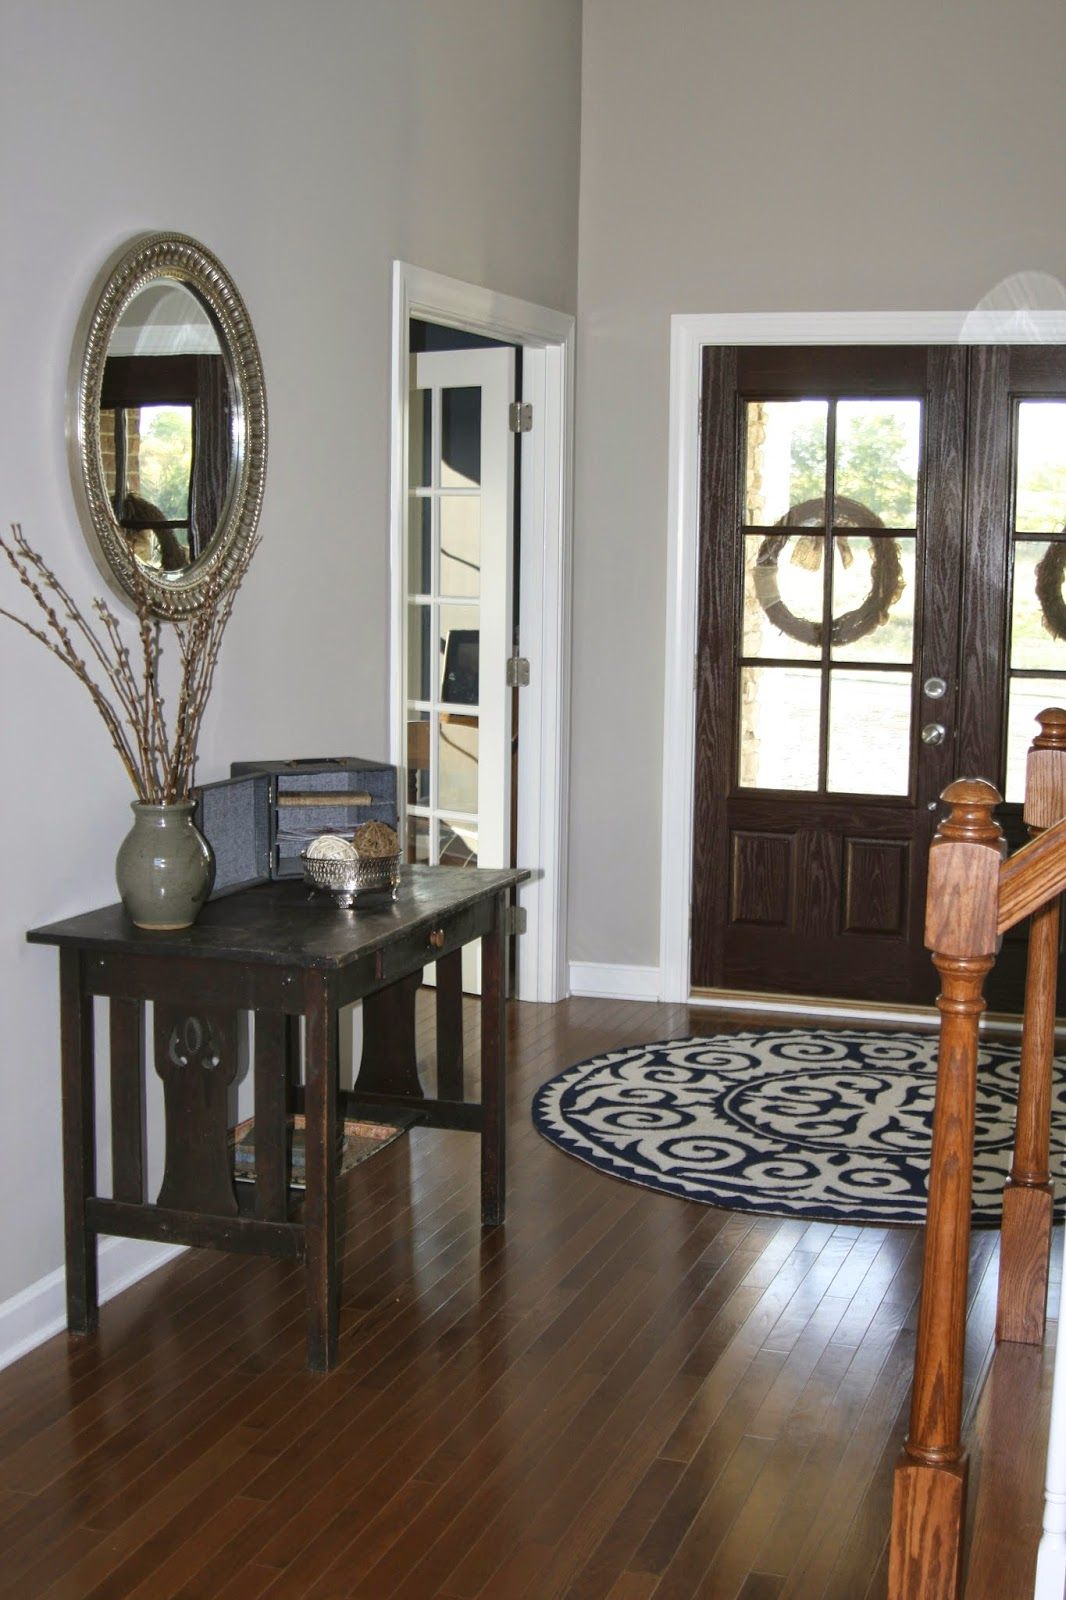 entryway paint revere pewter benjamin moore i like the dark wood floor color too. Black Bedroom Furniture Sets. Home Design Ideas